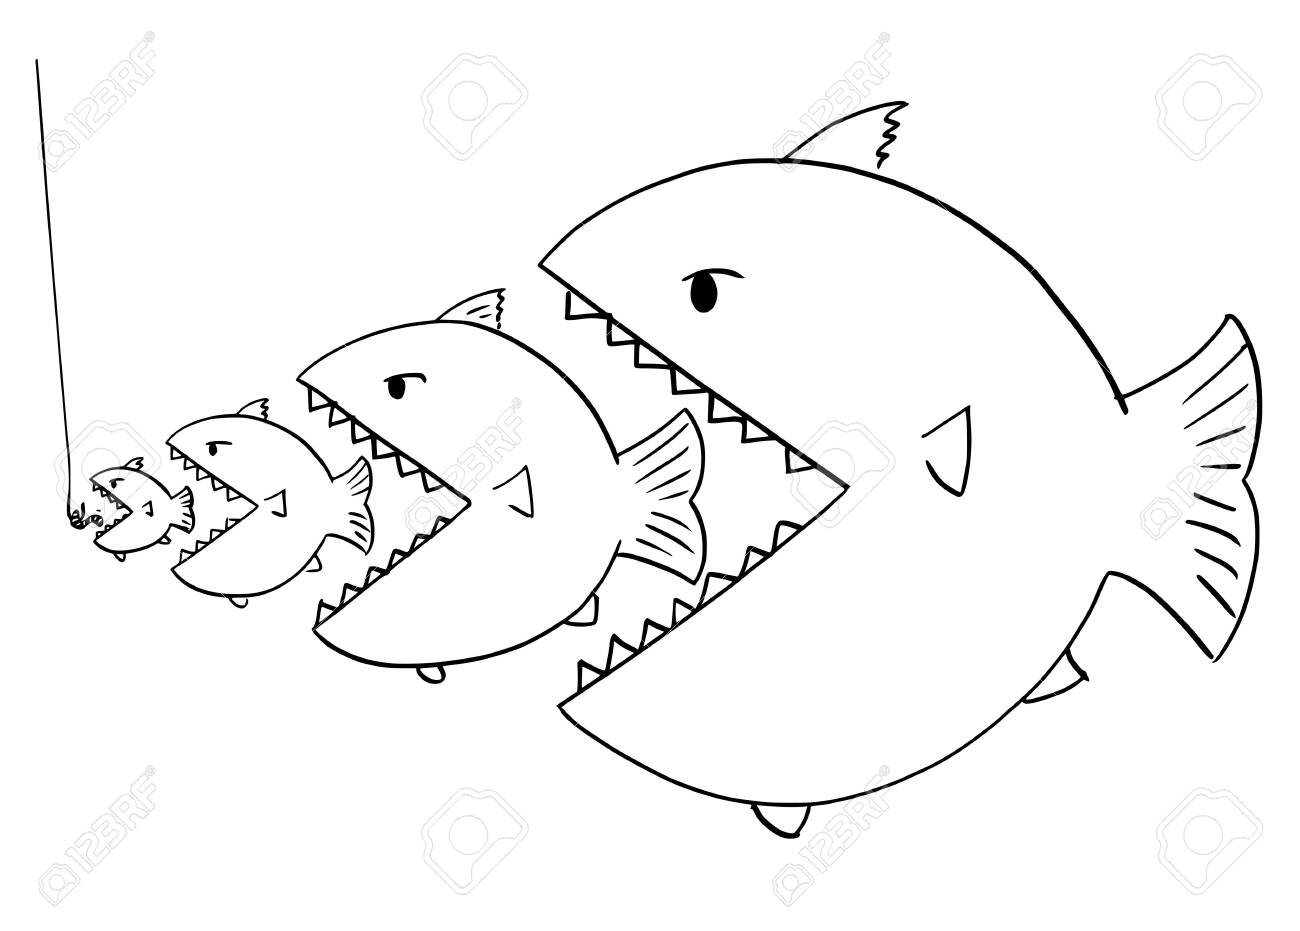 Cartoon Drawing Or Illustration Of Line Of Fish Bigger Is Eating